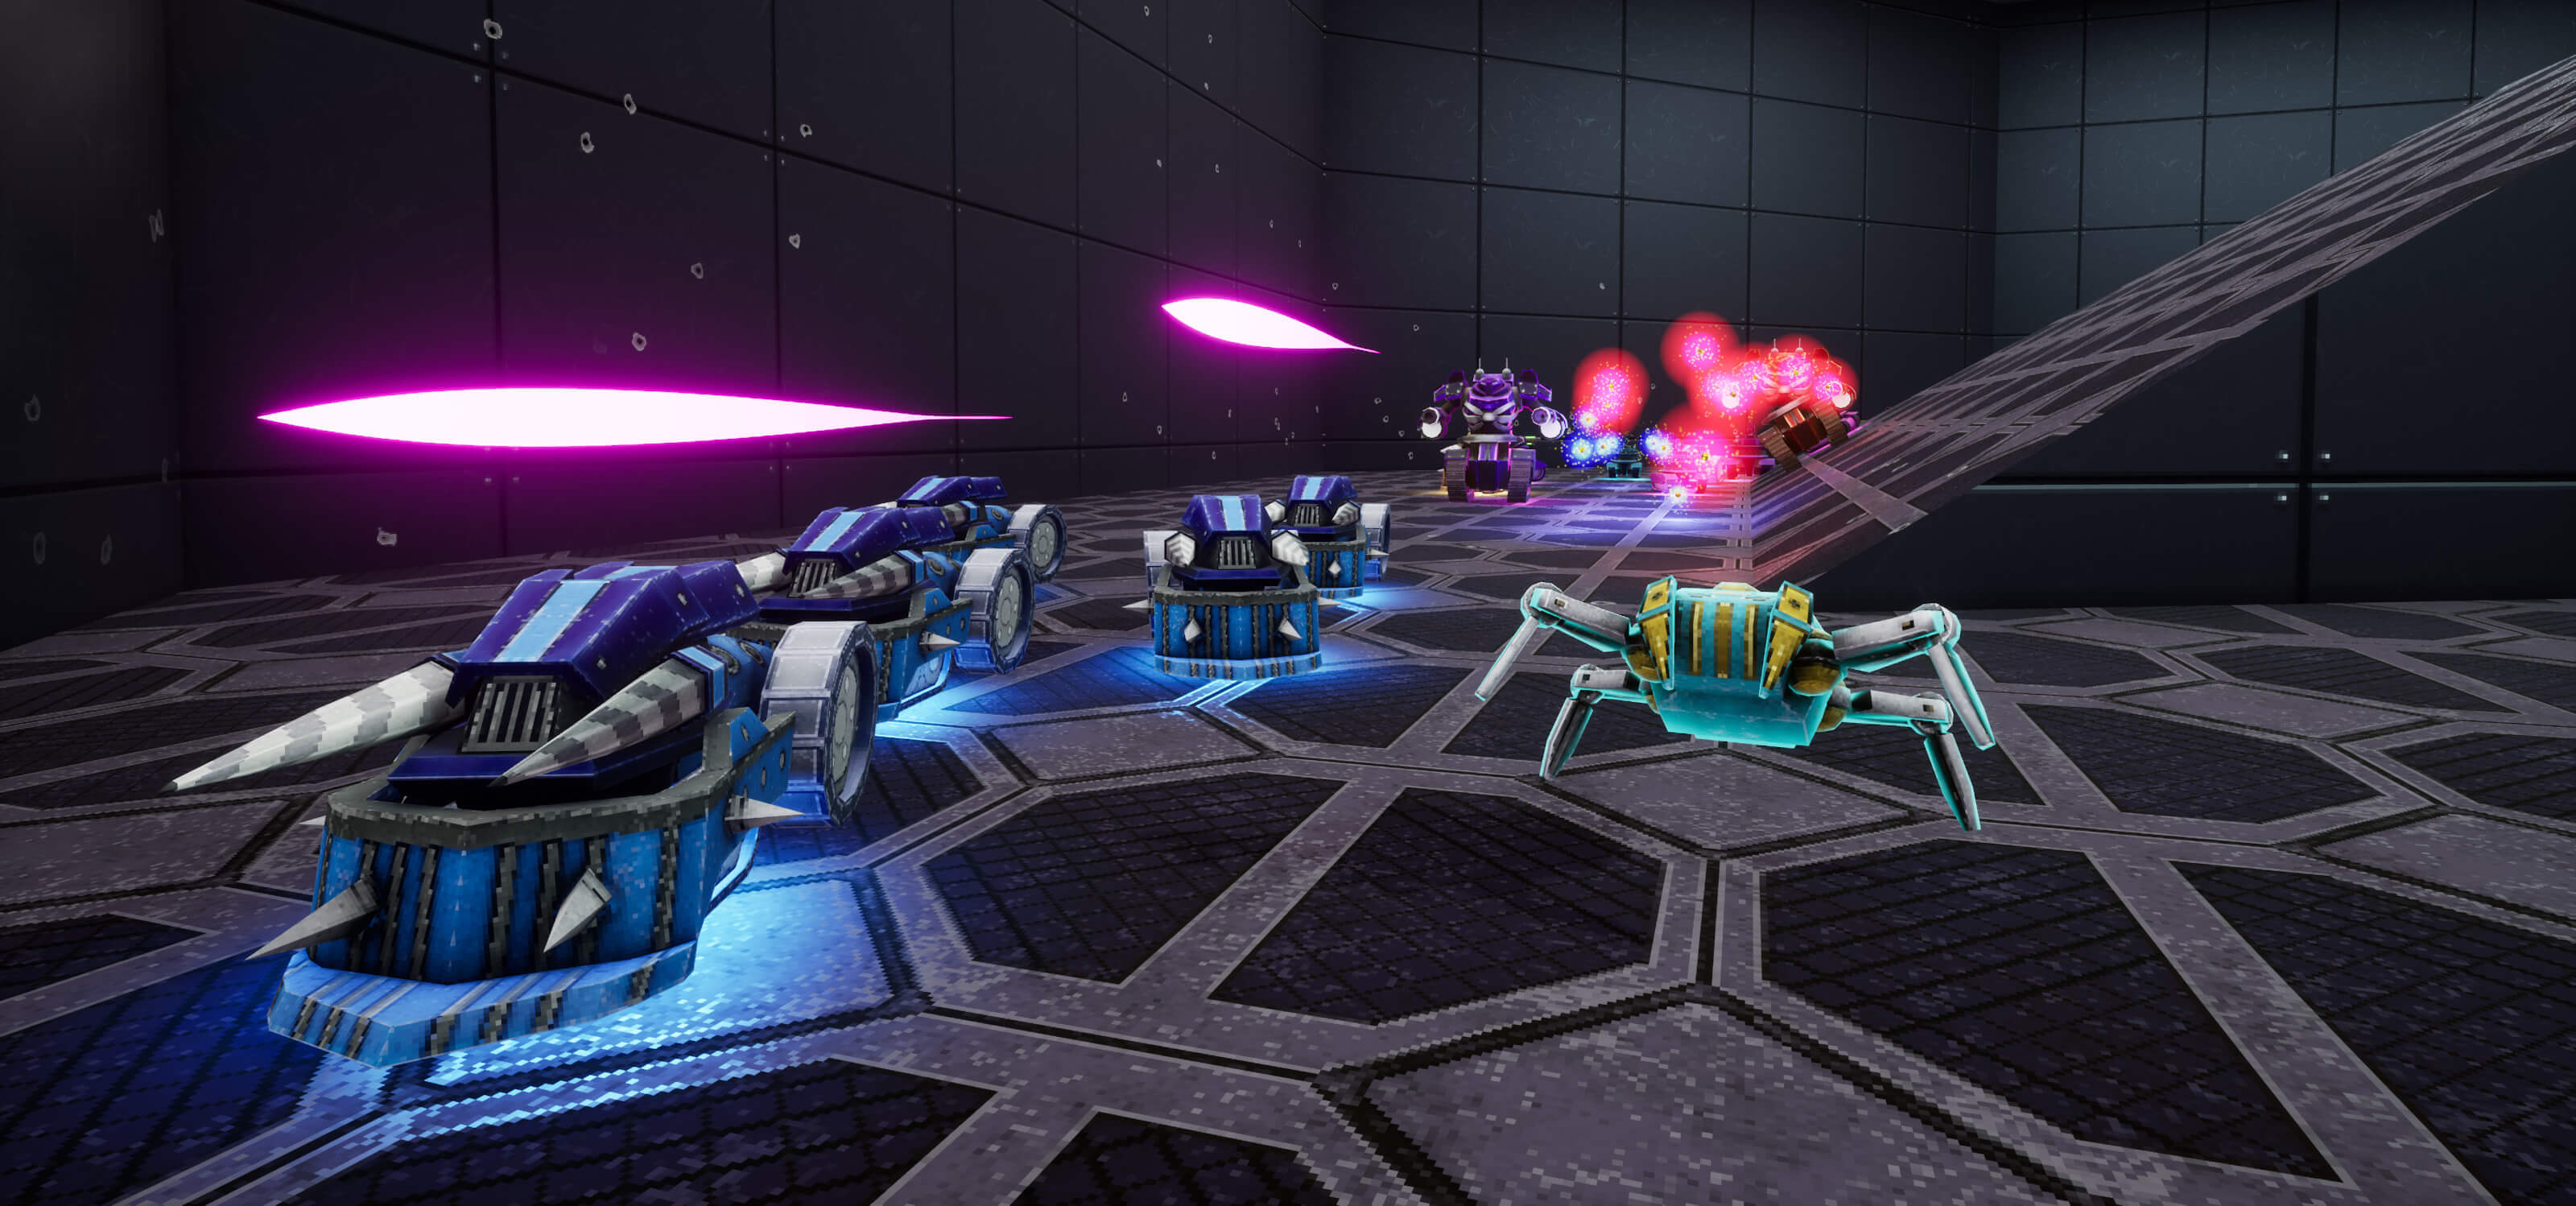 Game screenshot from OMFG: One Million Fatal Guns; room filled with deadly enemy robots